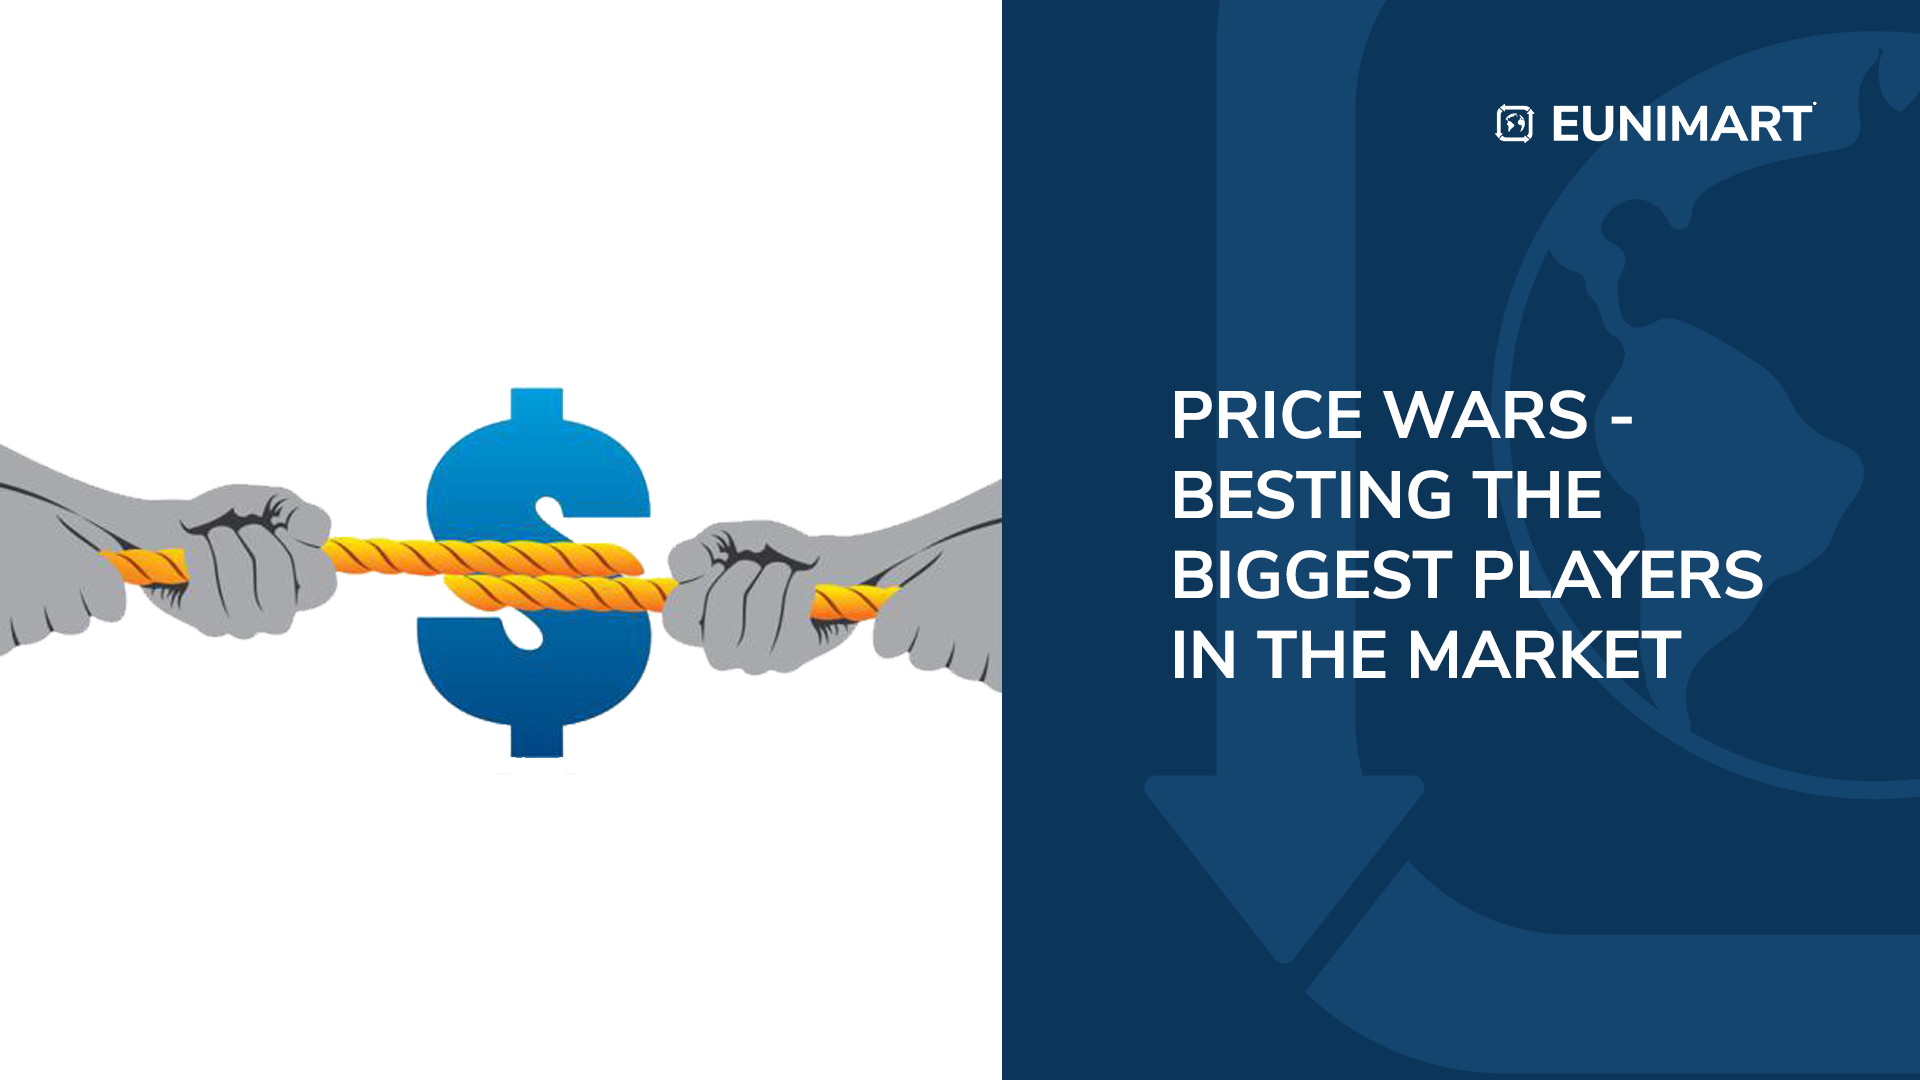 The biggest mistake of ecommerce-price wars